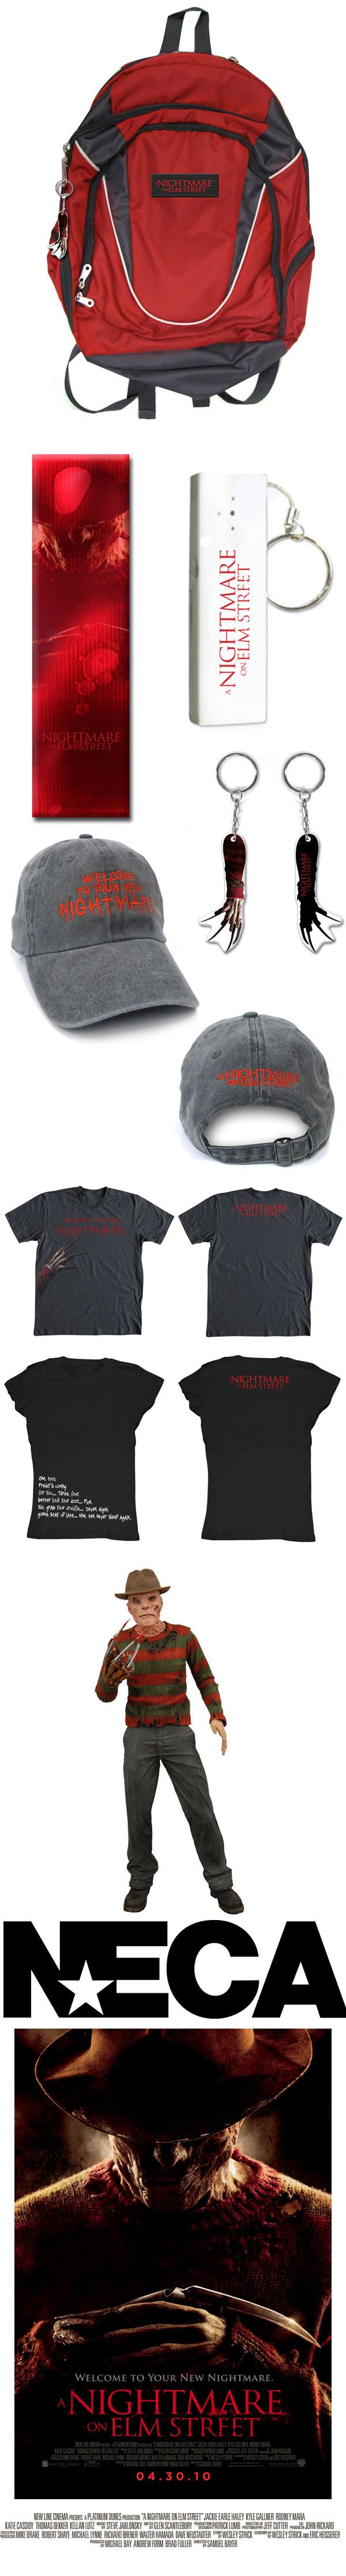 A Nightmare on Elm Street giveaway.jpg